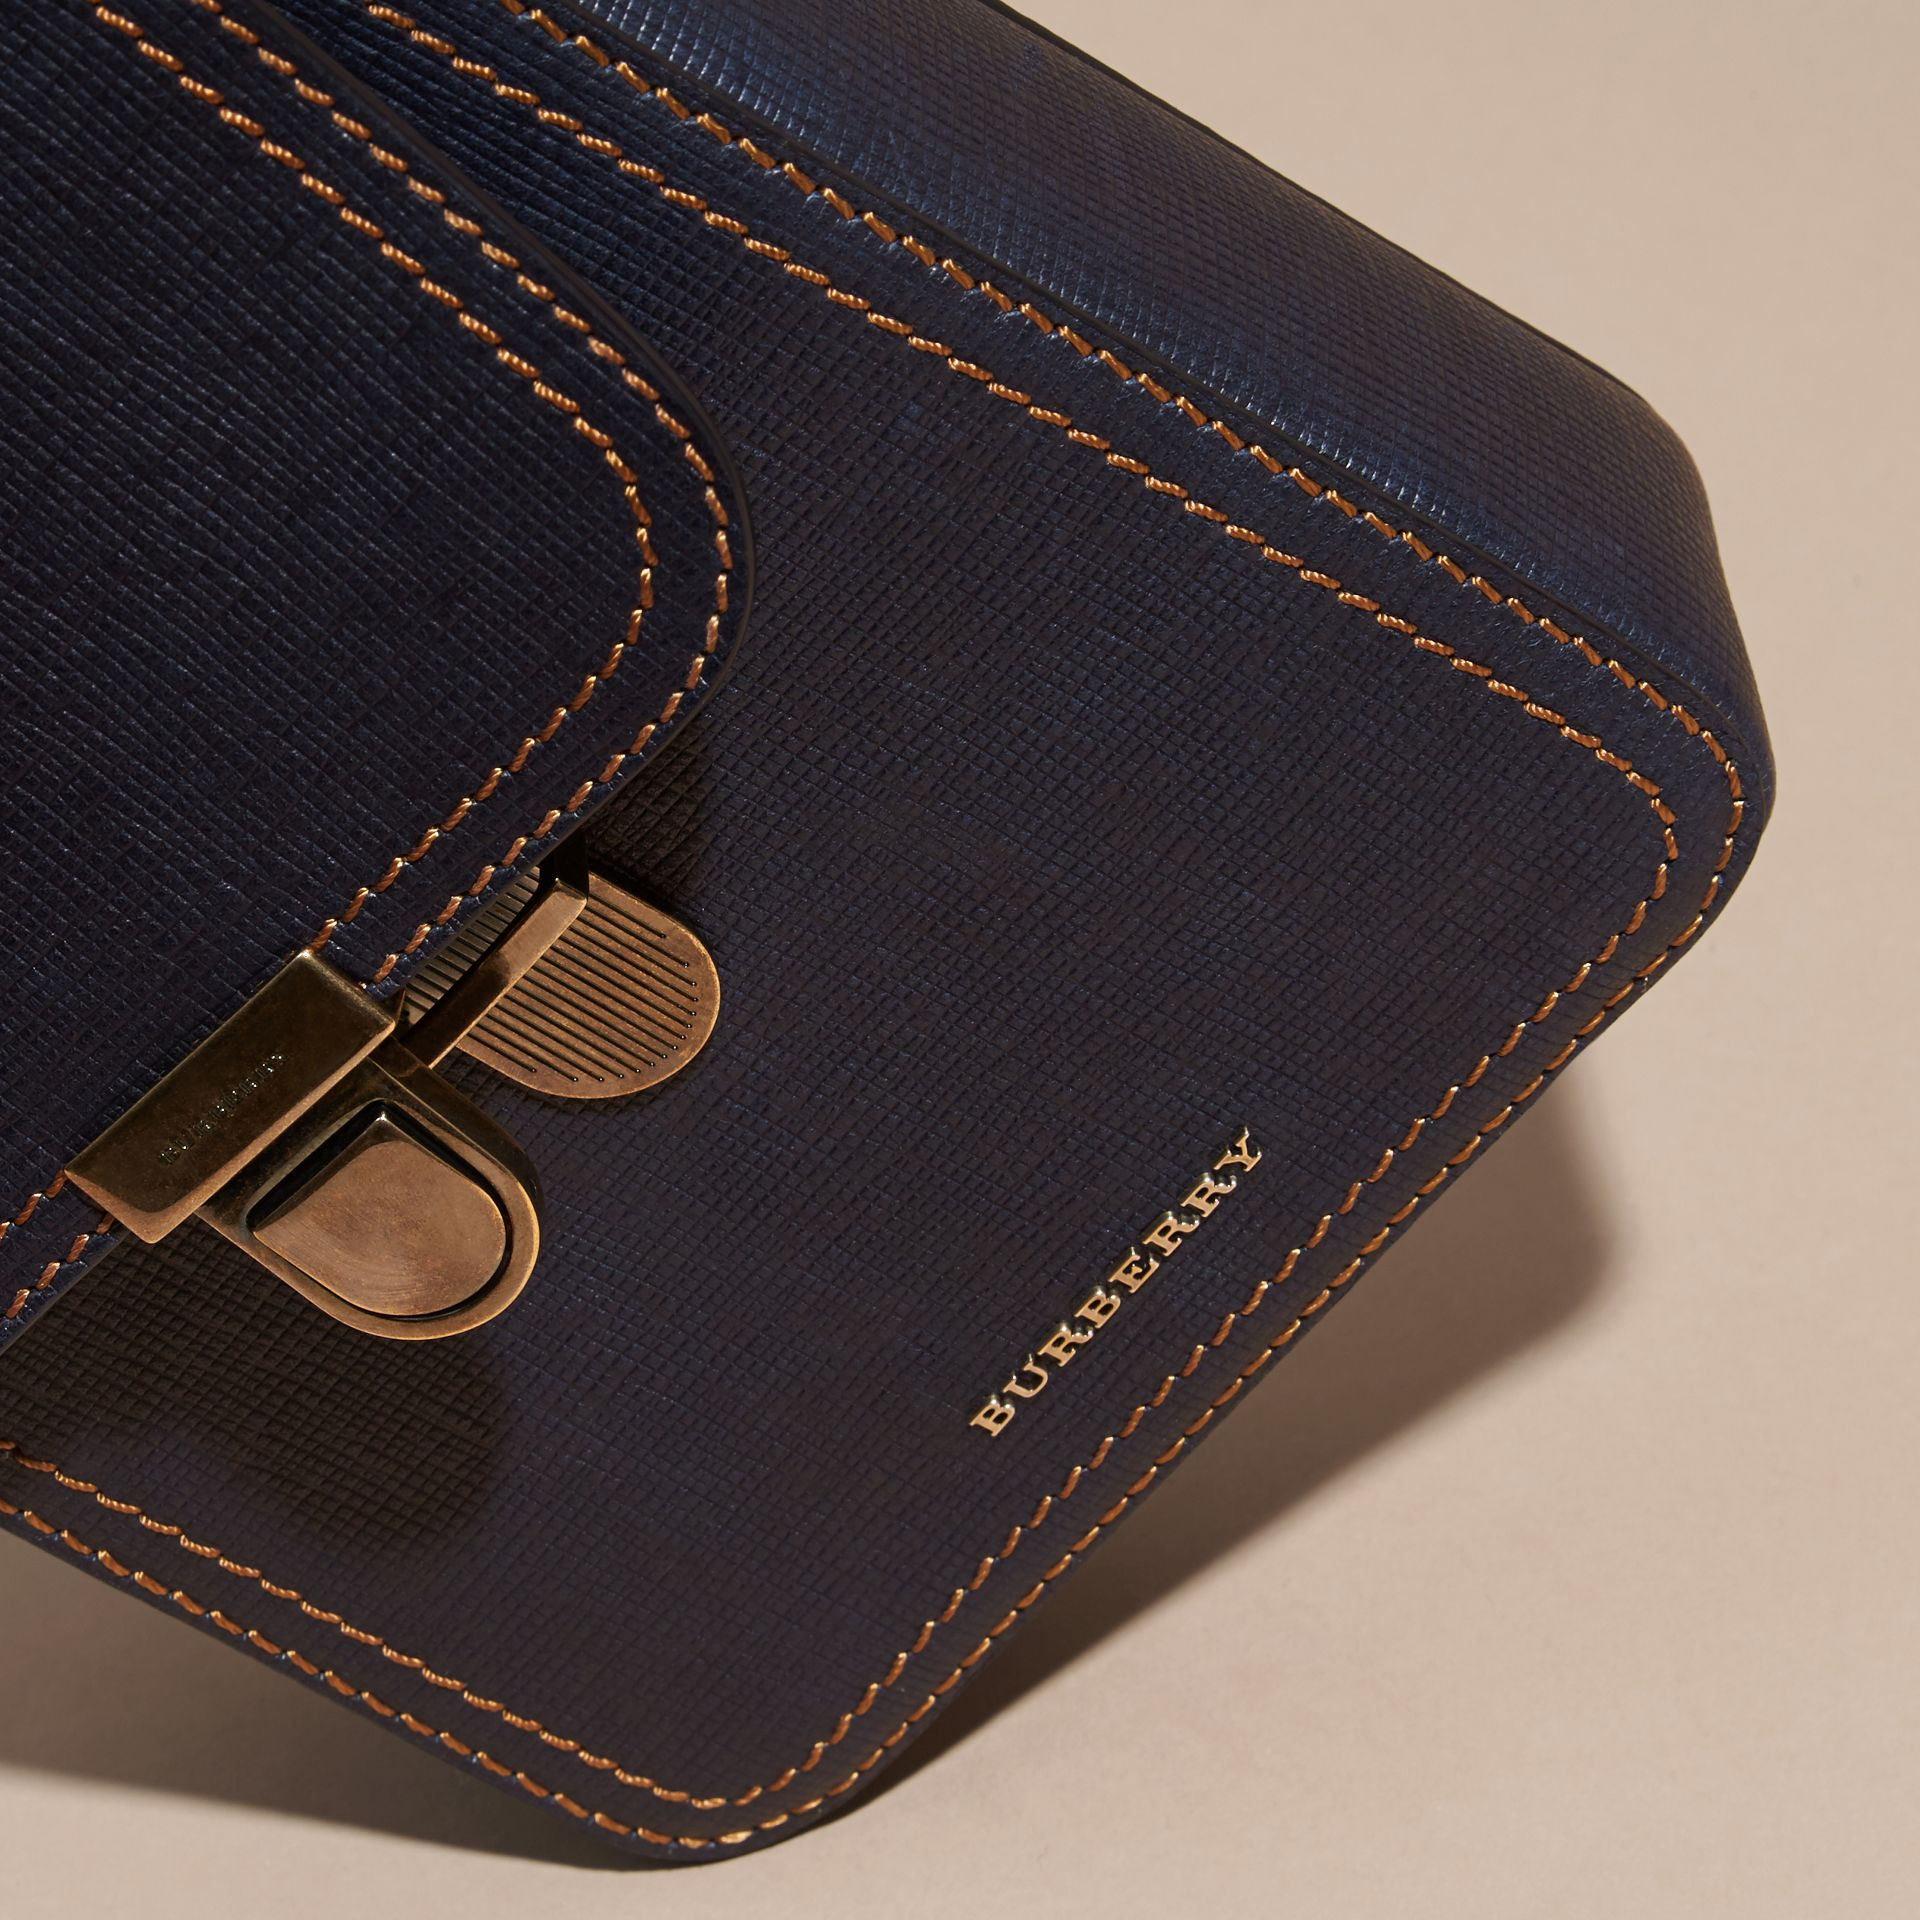 Dark navy The Small Satchel in Textured Leather - gallery image 2